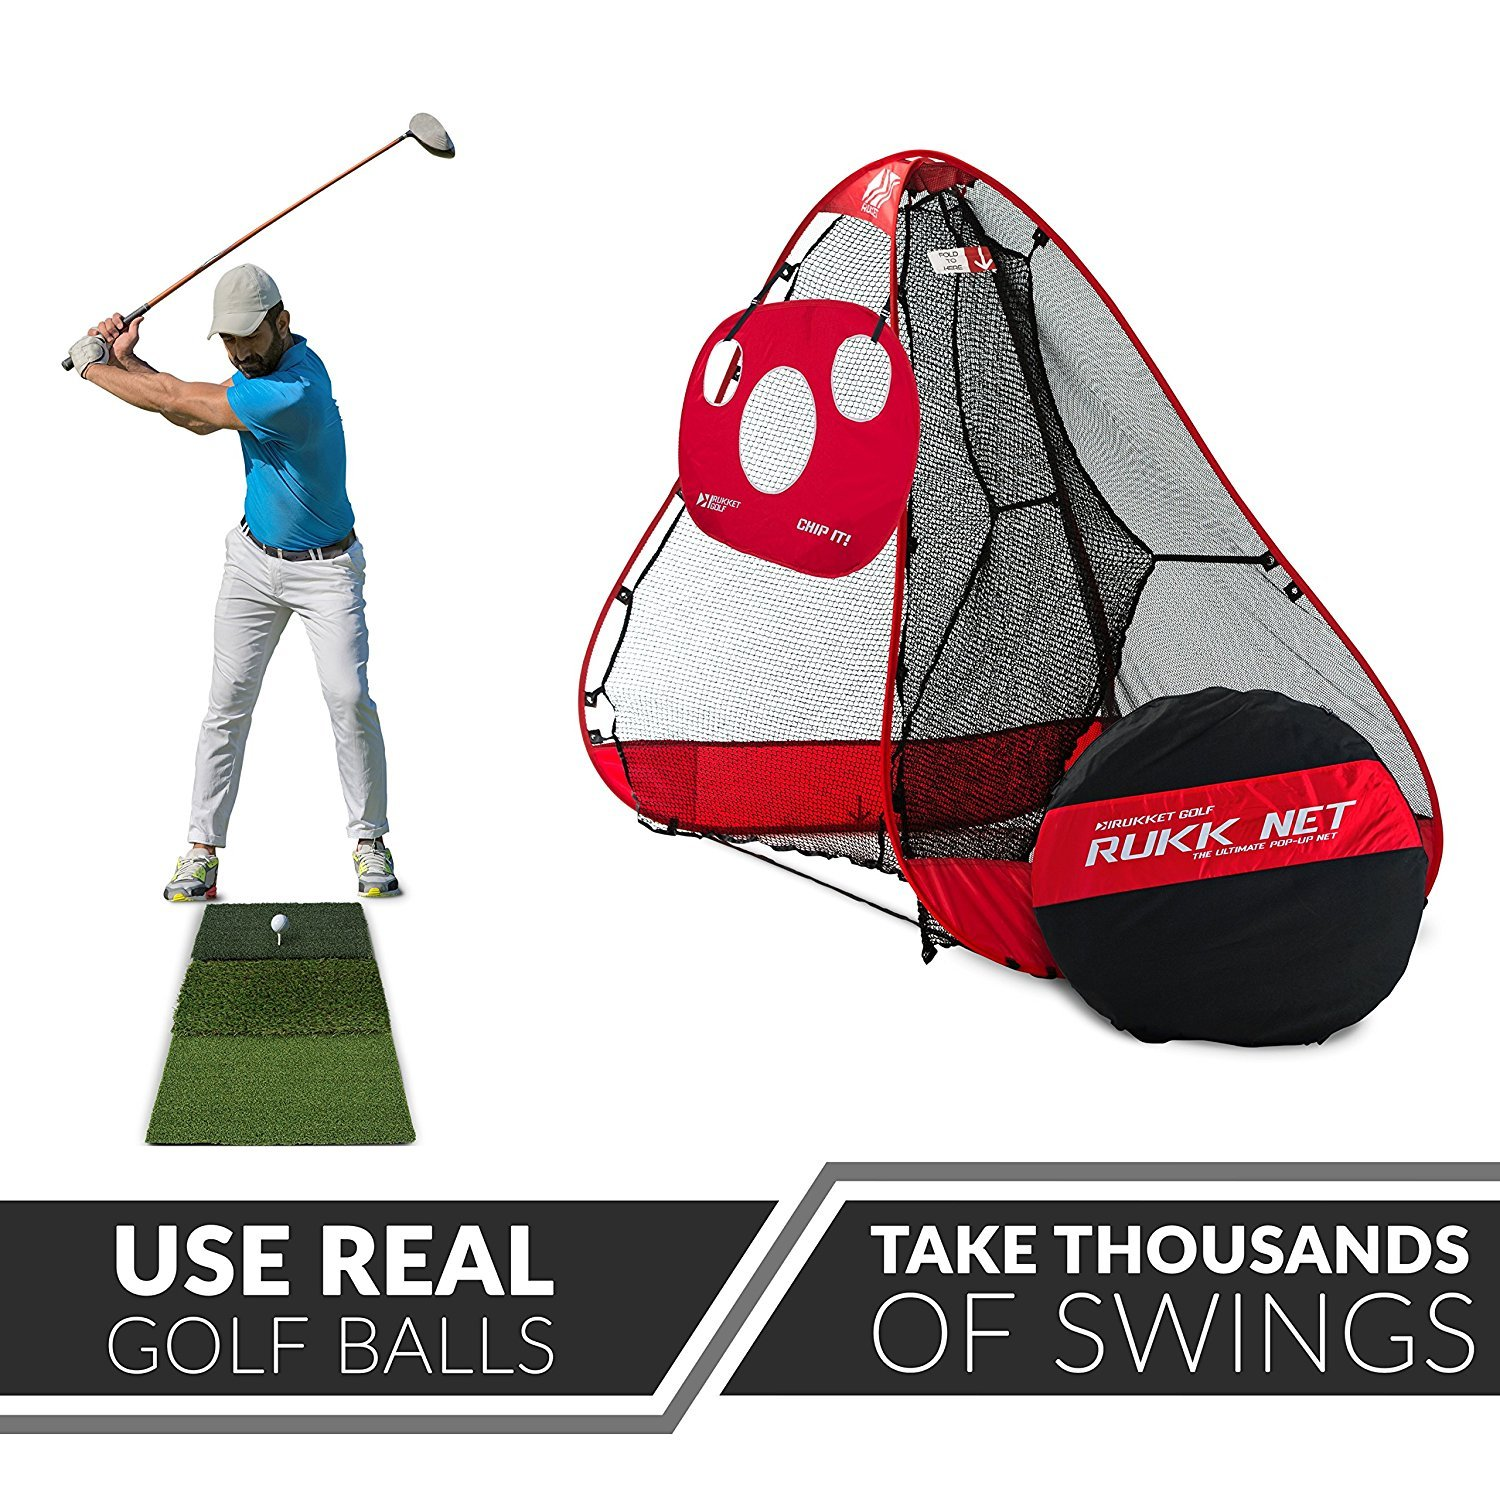 Rukket 4pc Golf Bundle | 10x7ft Portable Driving Net | Chipping Target | Tri-Turf Hitting Mat | Carry Bag | Practice Outdoor and Indoor by Rukket Sports (Image #2)